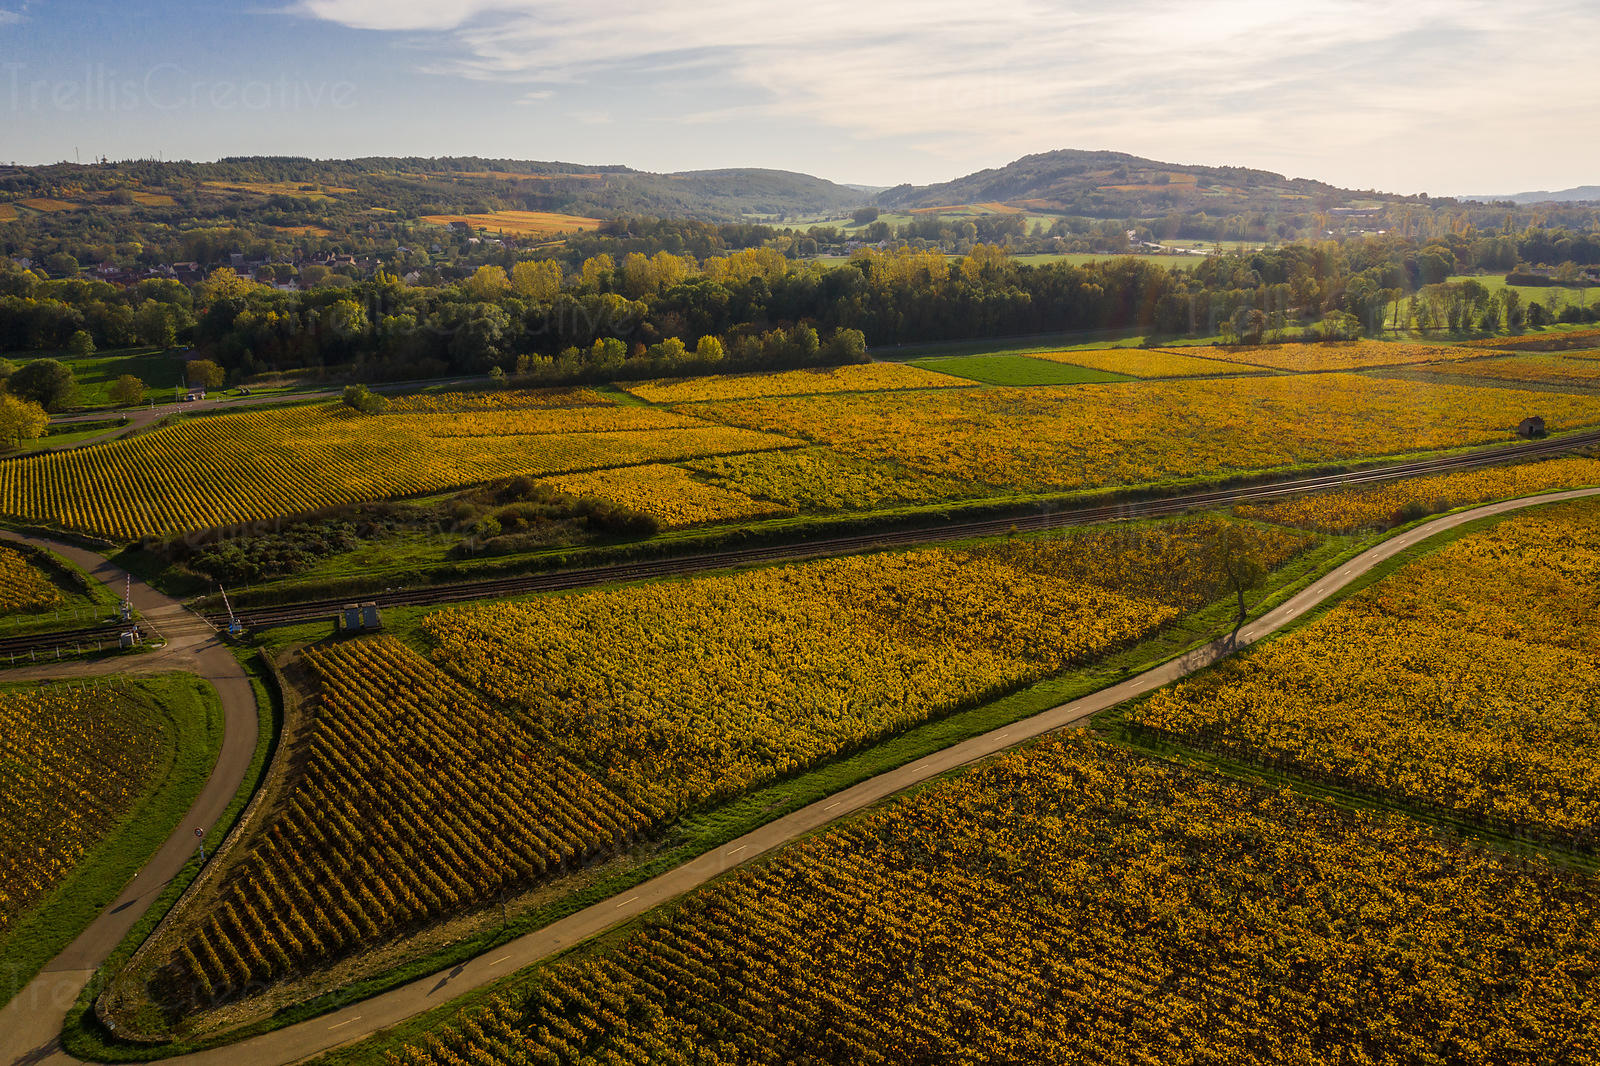 Aerial photo of the Voie Des Vignes that passes through beautiful vineyards of Burgundy, France